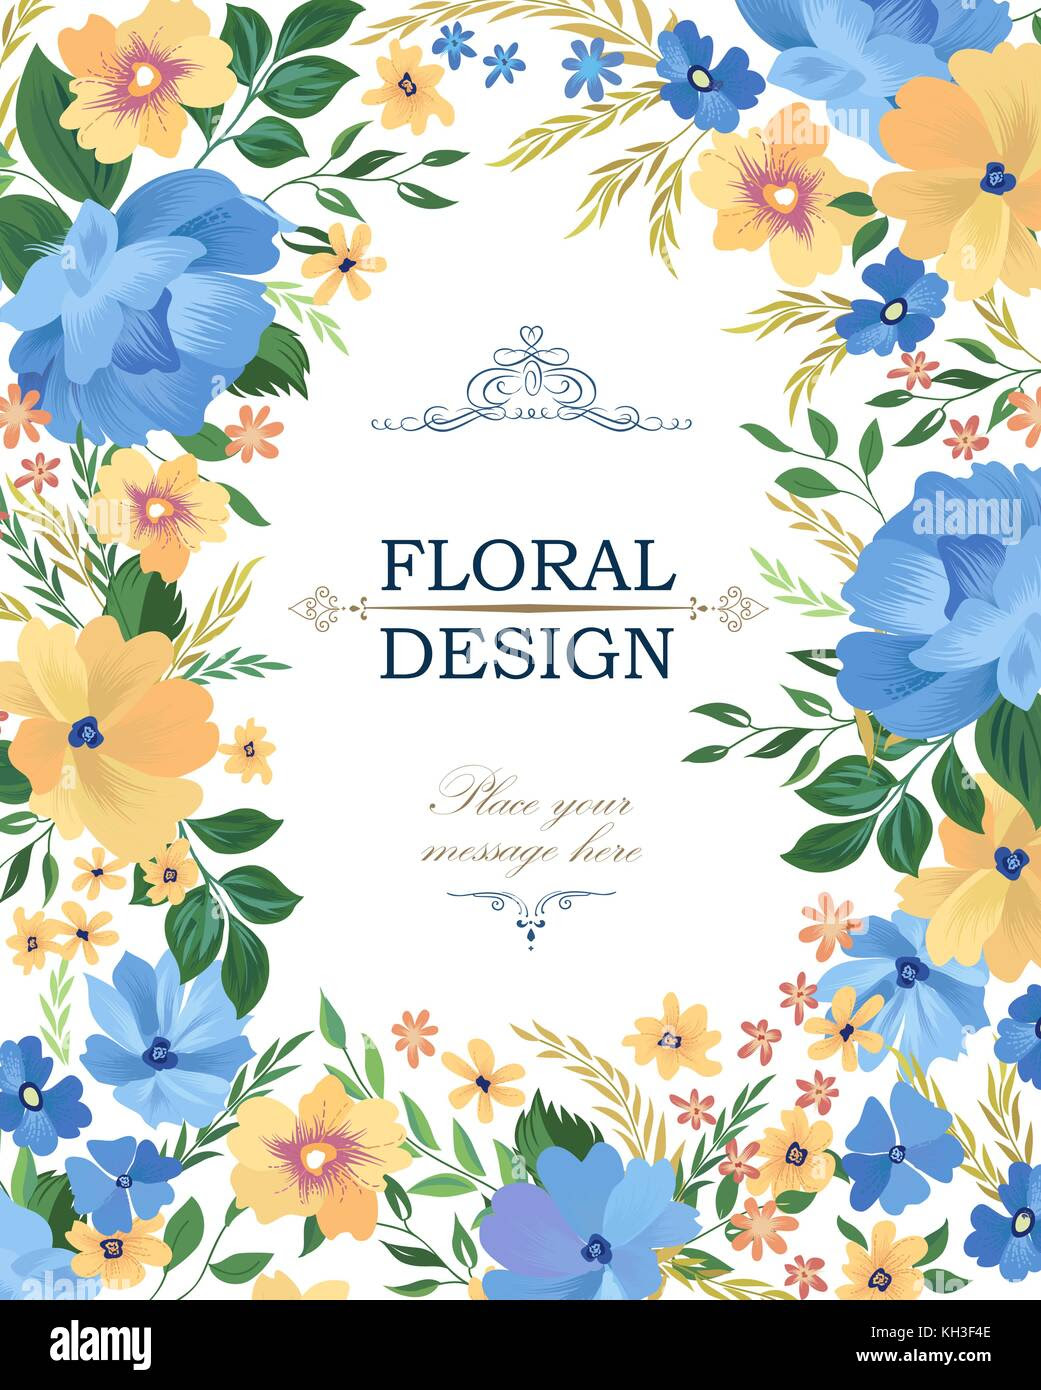 Flower Border Designs For Cards Wmsibinfo